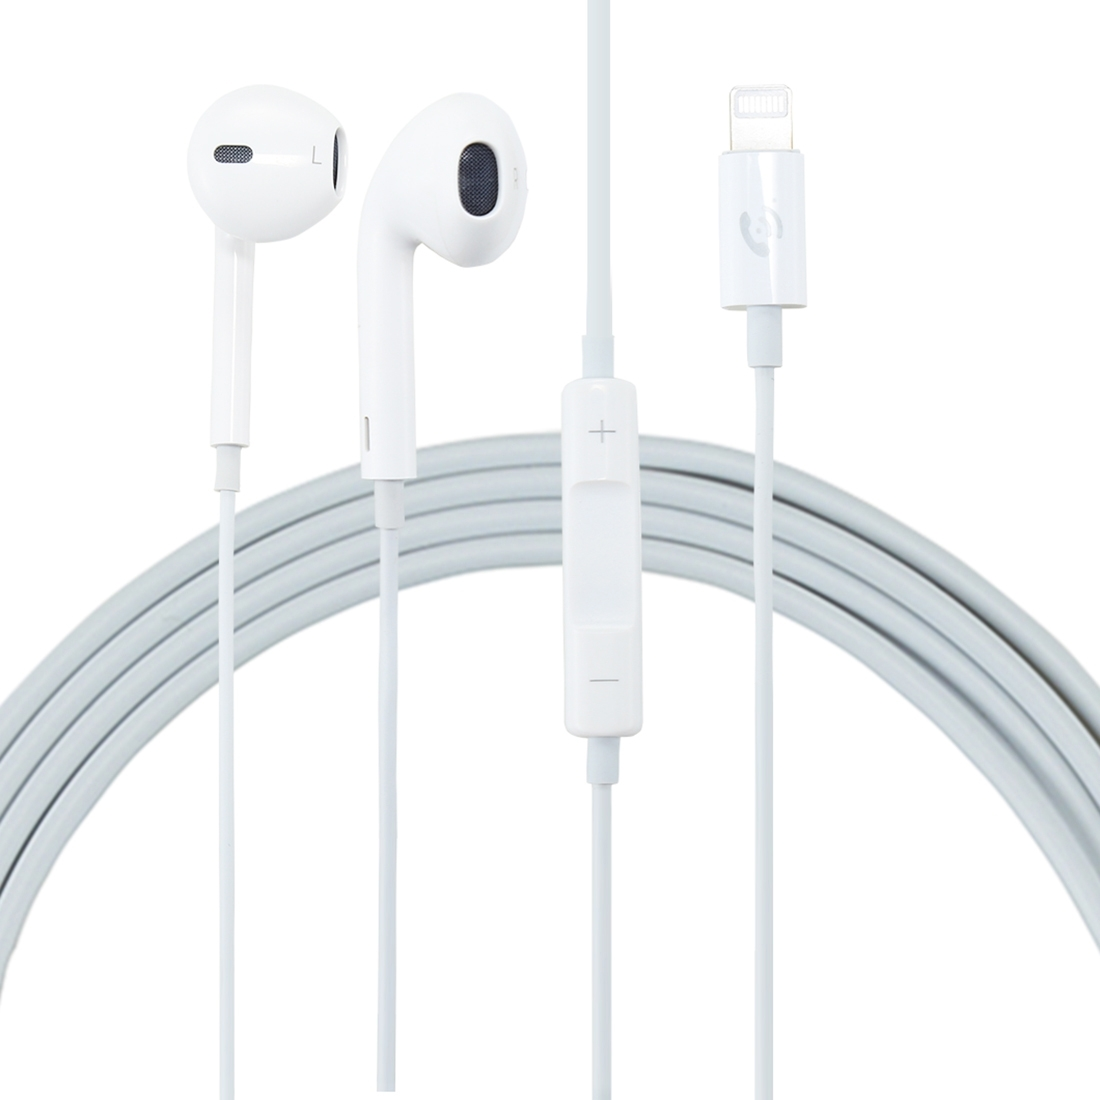 Ml715 1 2m 8 Pin Port Earphones Without Bluetooth Use By Directly Plugged In Port Support Music And Calls For Iphone Xr Iphone Xs Max Xs Iphone 8 Plus 7